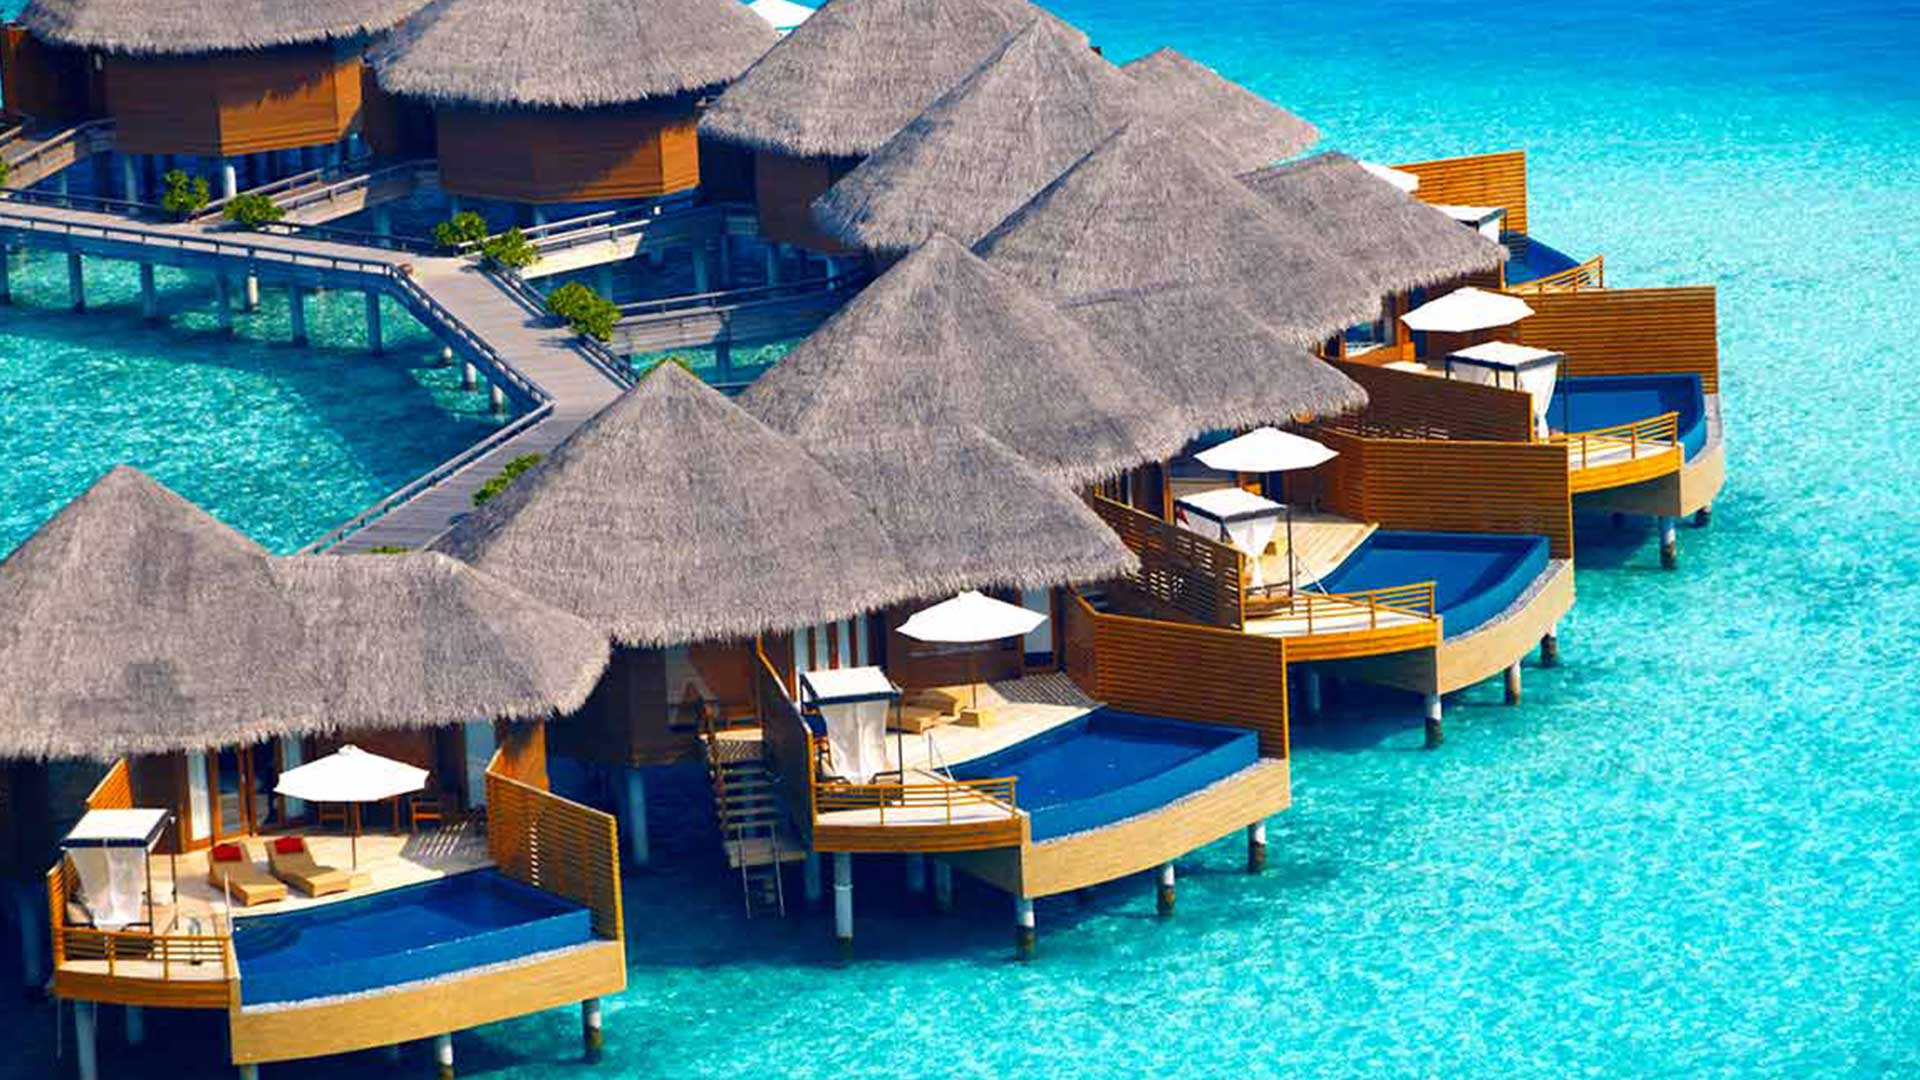 Maldives tourism records remarkable growth in 2016